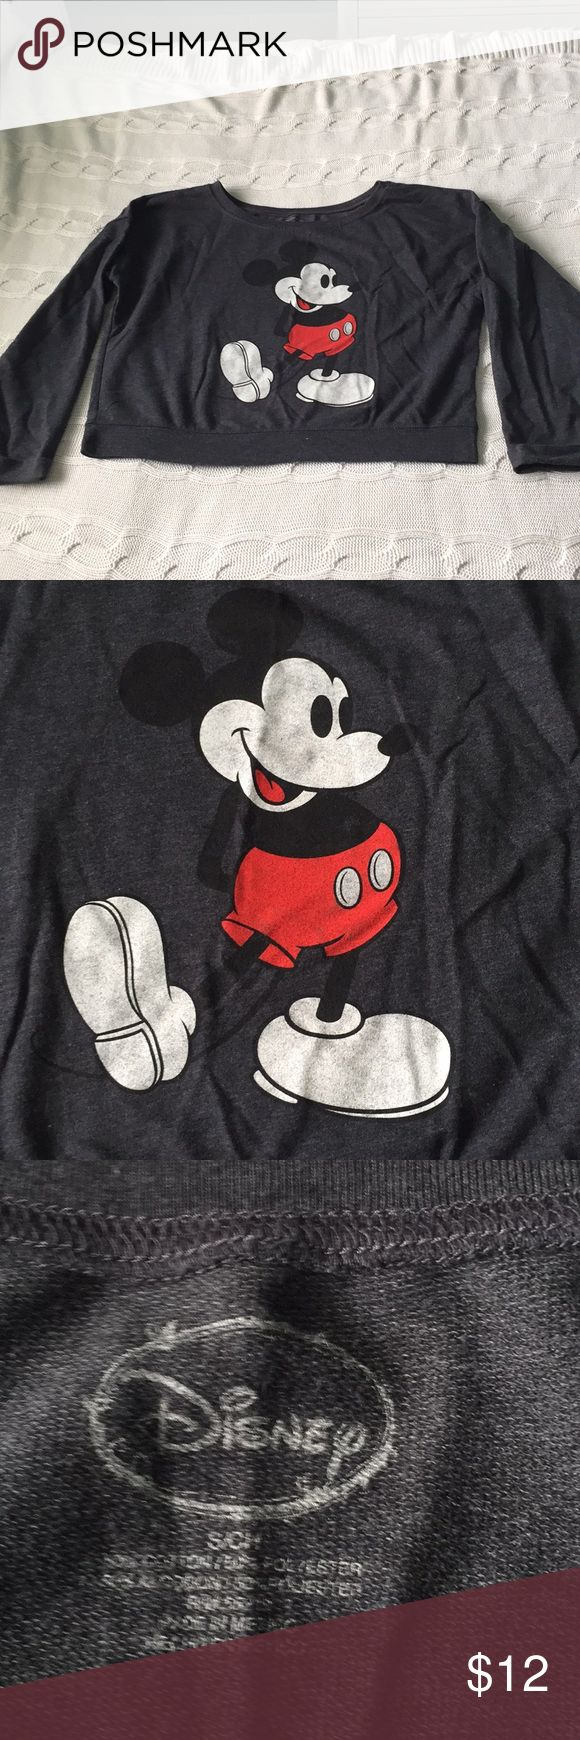 """Disney Mickey Mouse pullover Sweater Disney Mickey Mouse Sweater Adorable, official from Disney Mickey has some minor decorations   Make your offer. Feel free  Its a S/ch size but it runs large, see measurements below  Shoulders 22"""" Chest 22"""" Lenght 20""""  Item loc blue posh  012018 Disney Sweaters"""